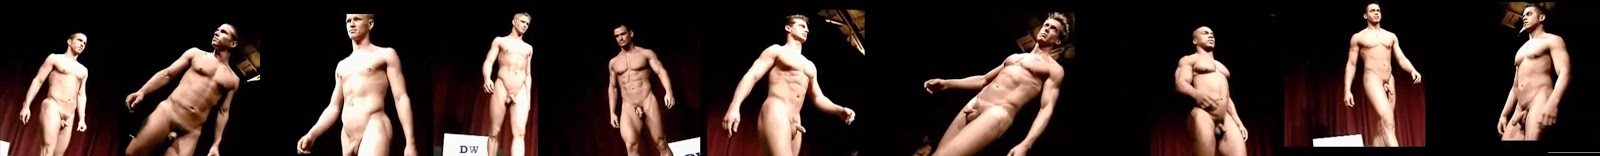 naked hunks on stage